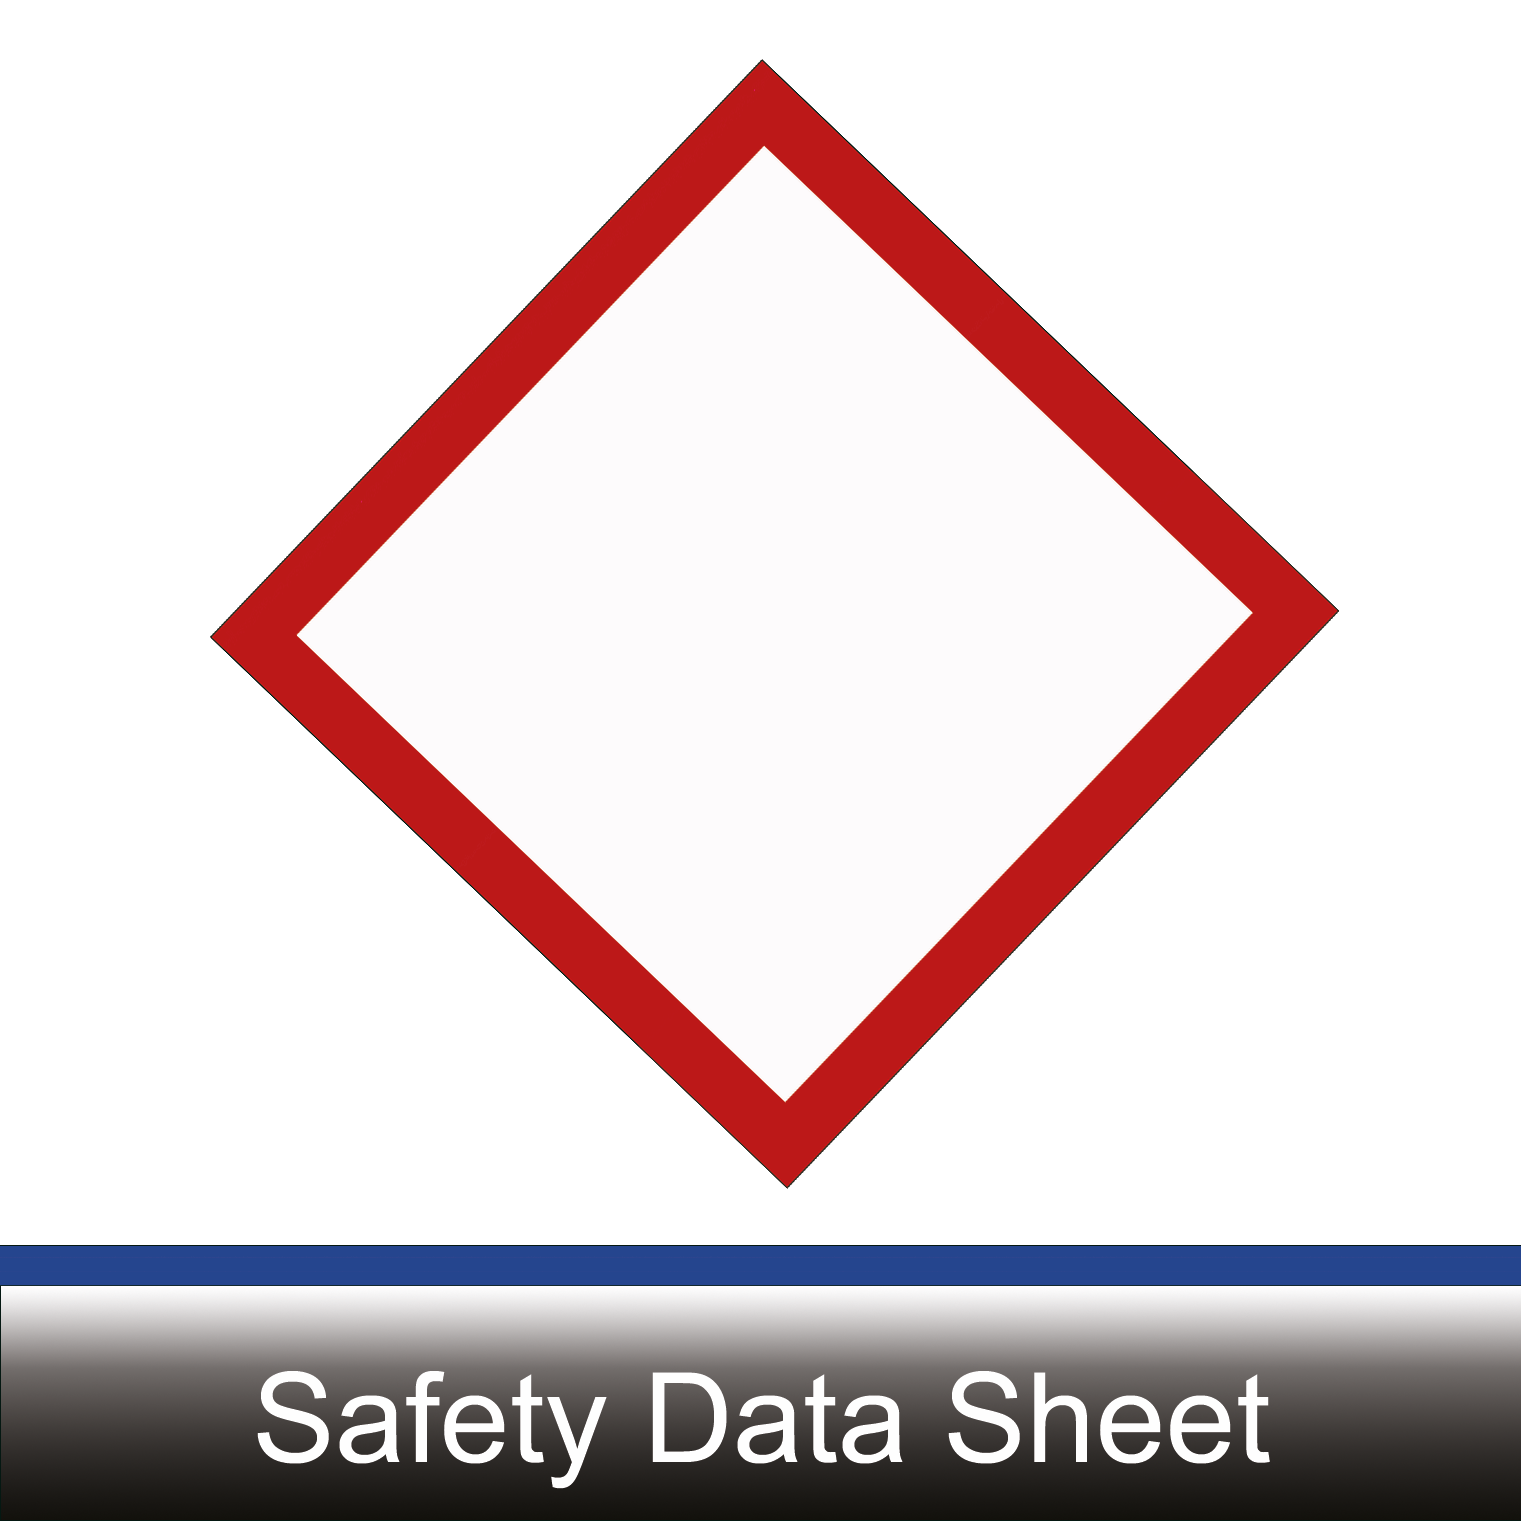 safety-data-sheet-icon.png